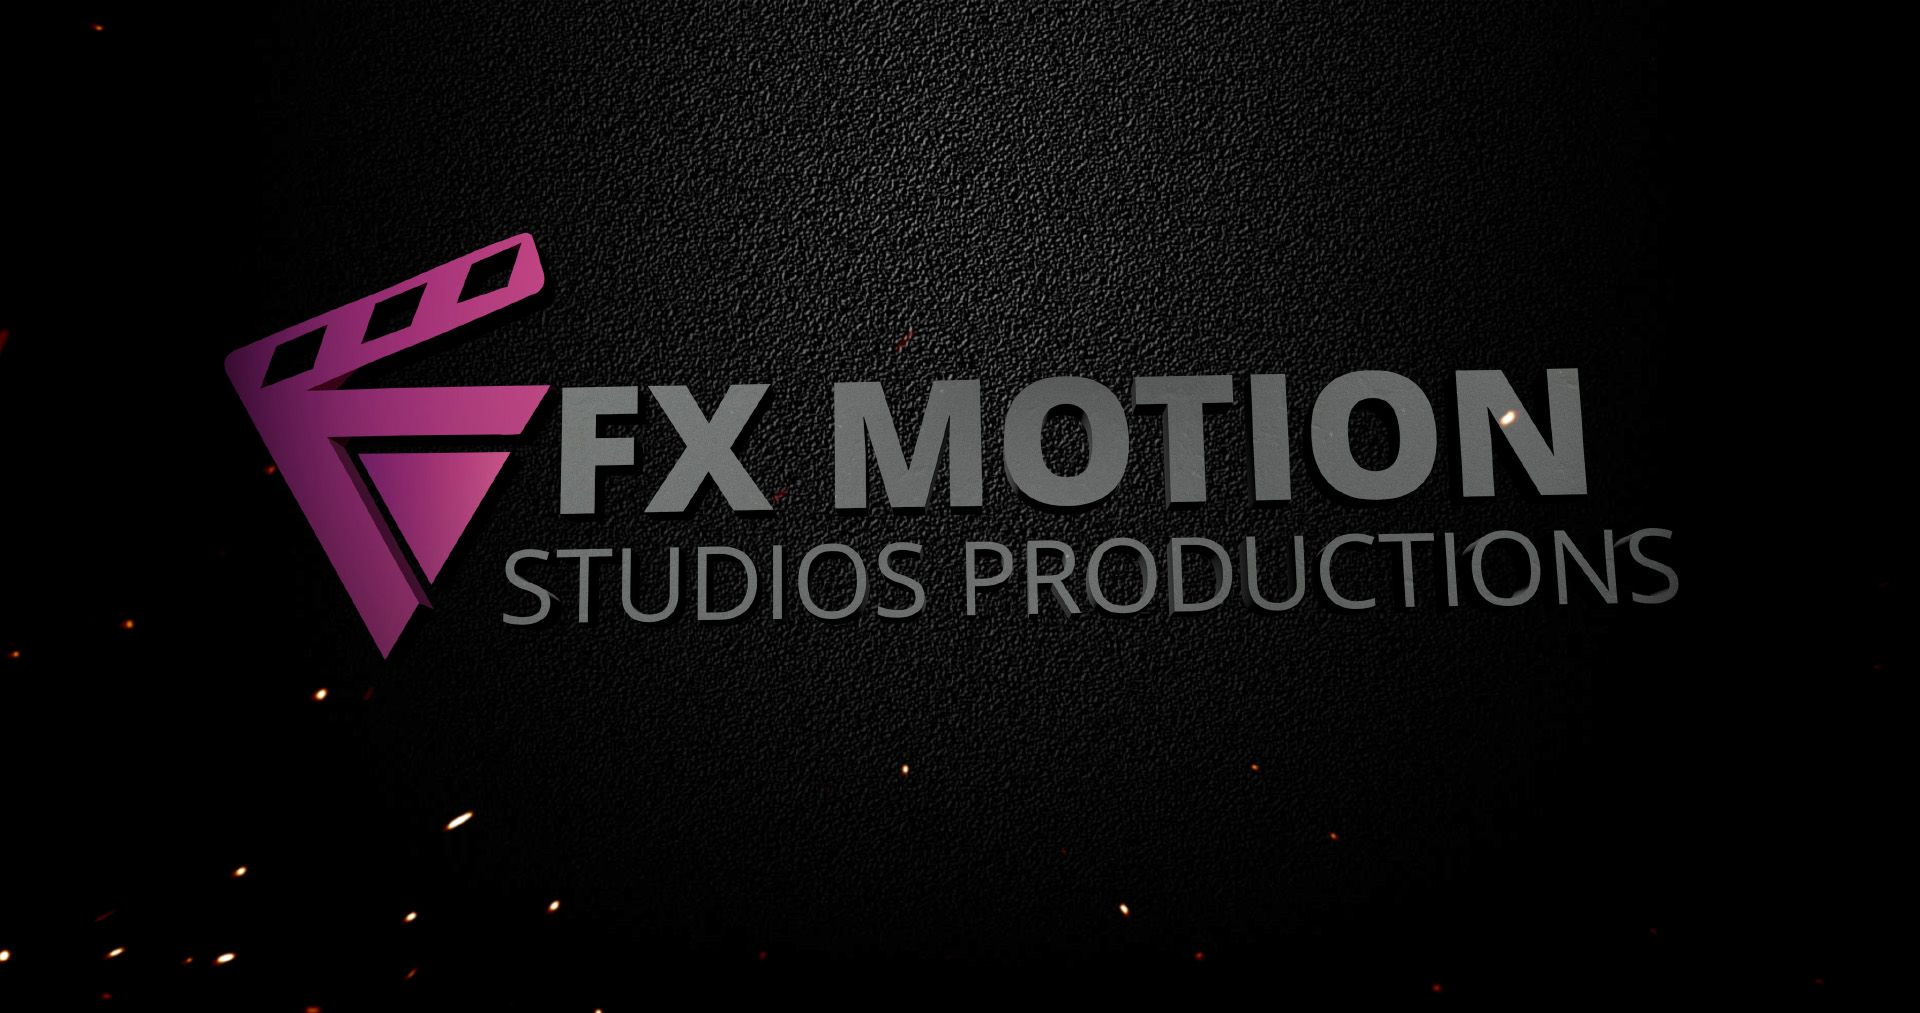 VFX Motion Studios Productios Logo Reveal – VFX Motion Studios ...